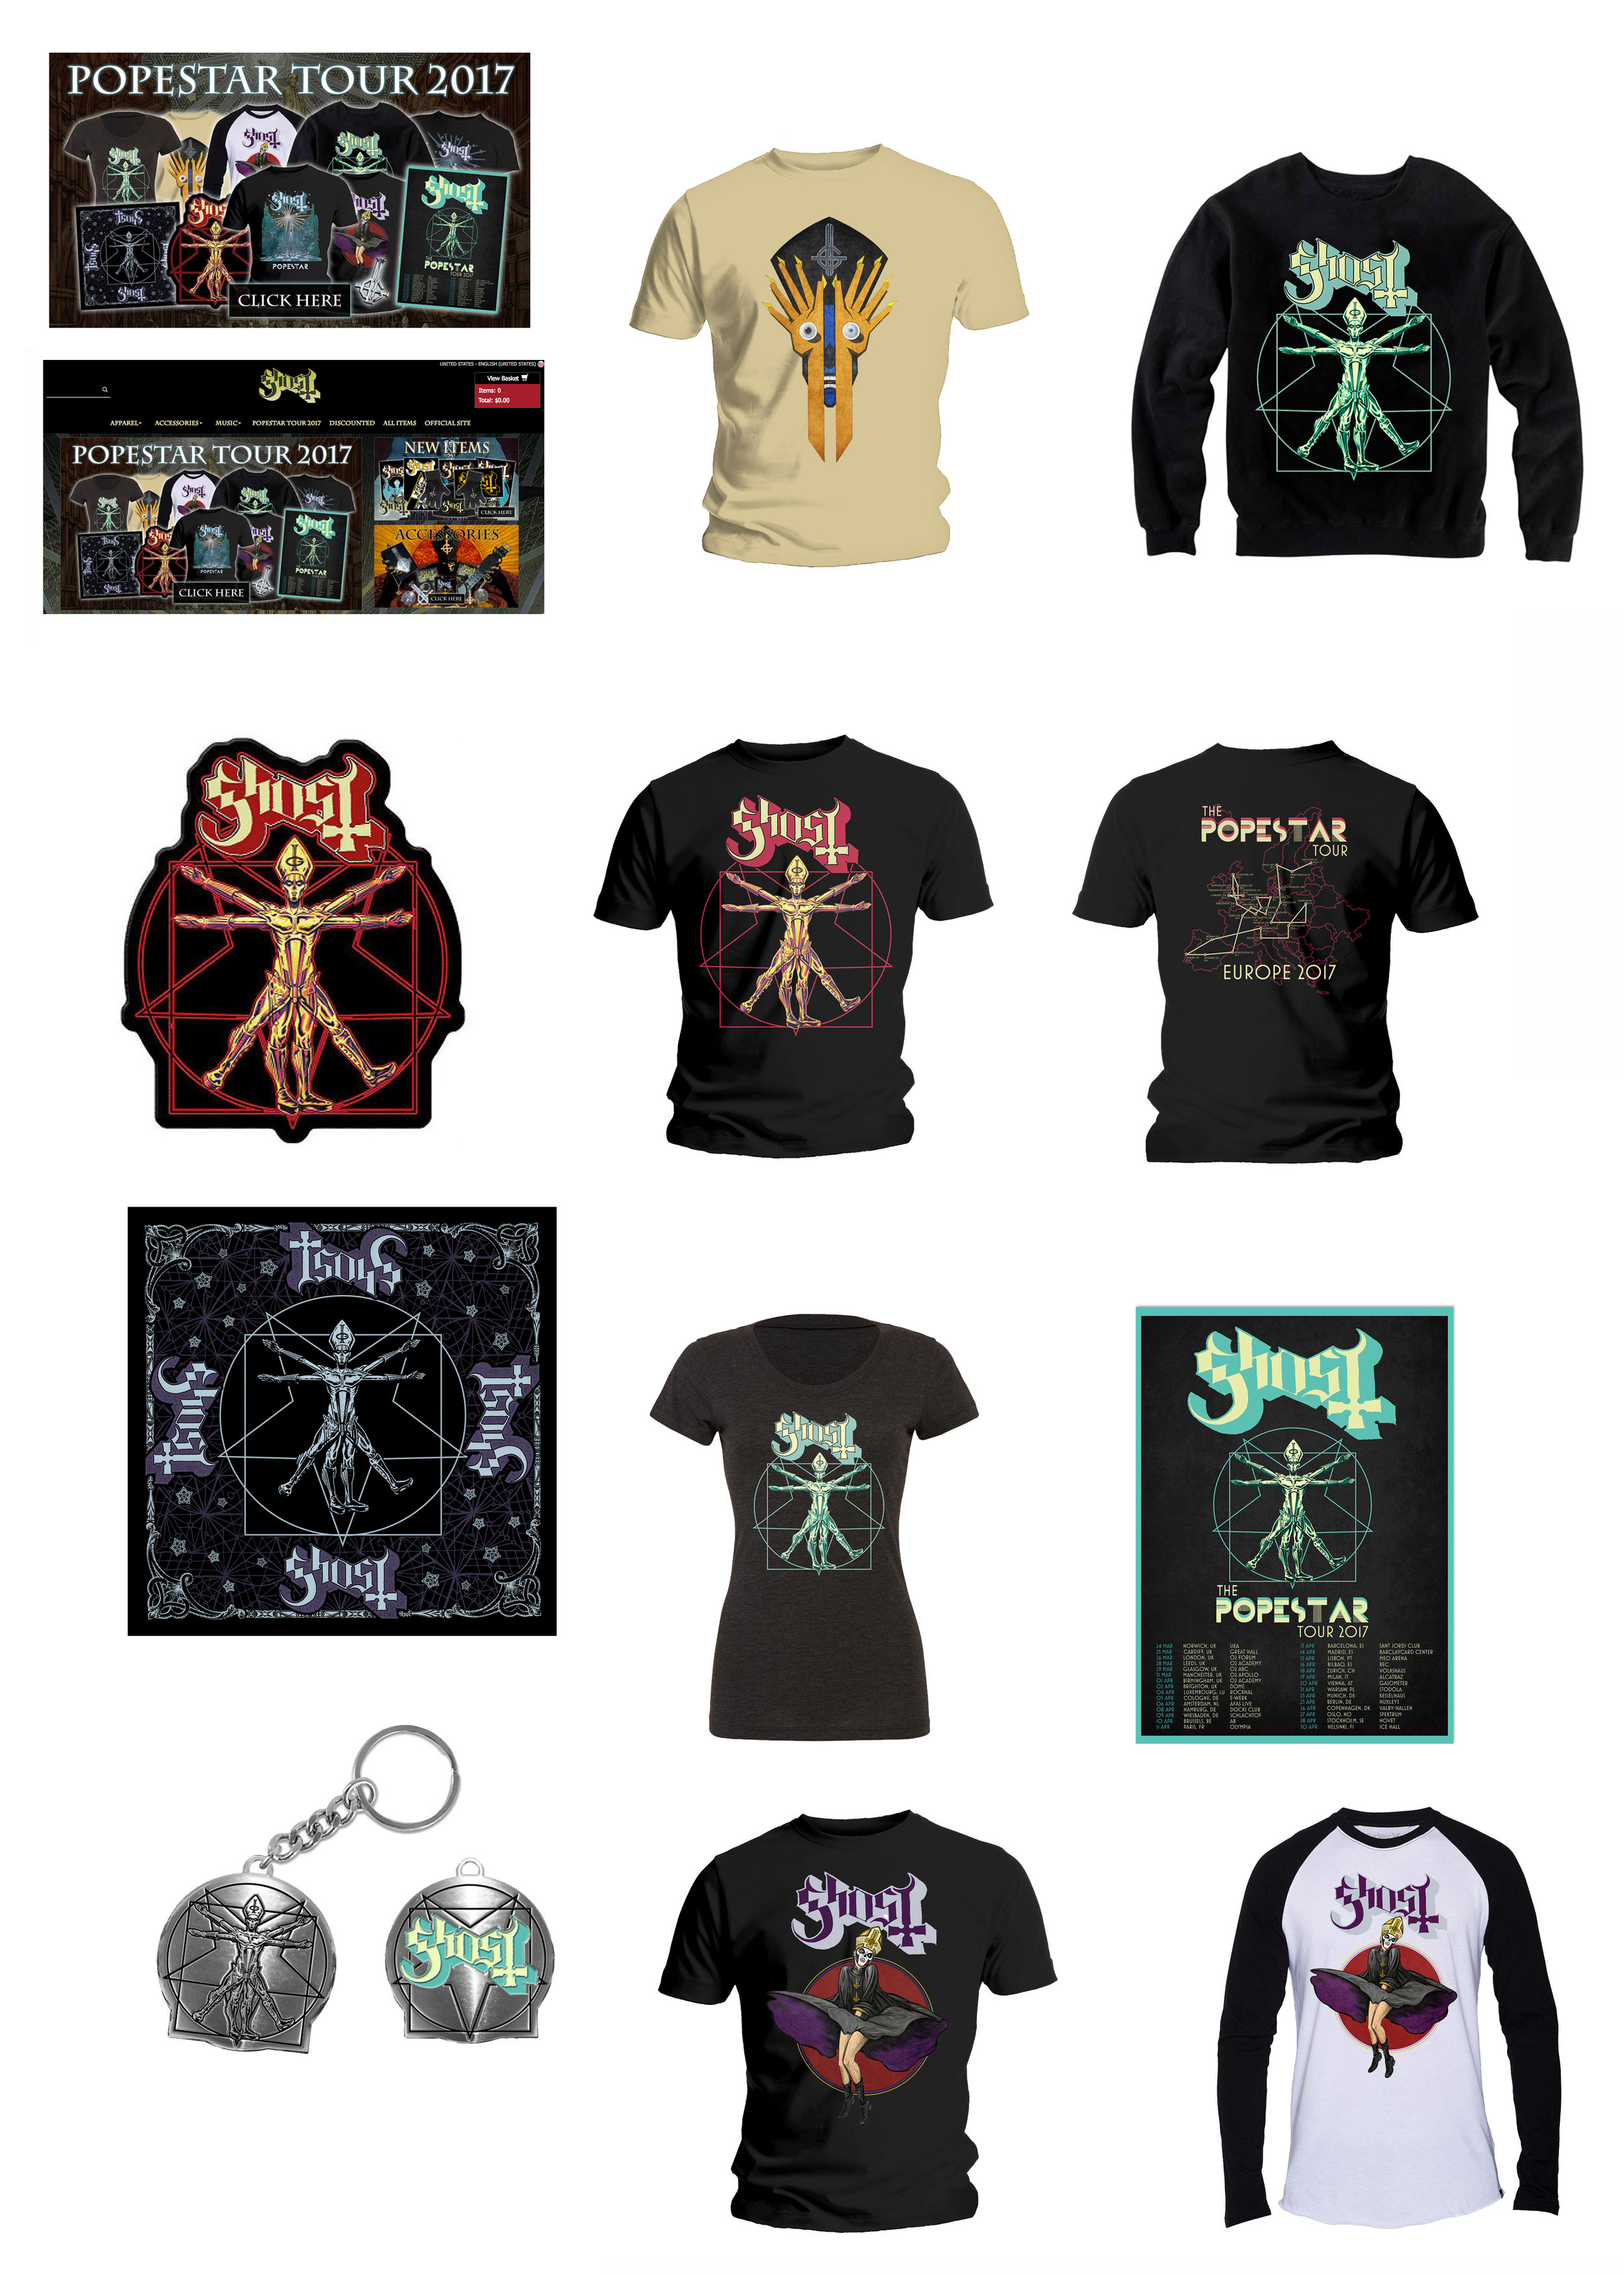 GHOST     The Popestar European Tour 2017   Official band Popestar Tour merch  David M. Brinley illustration and design